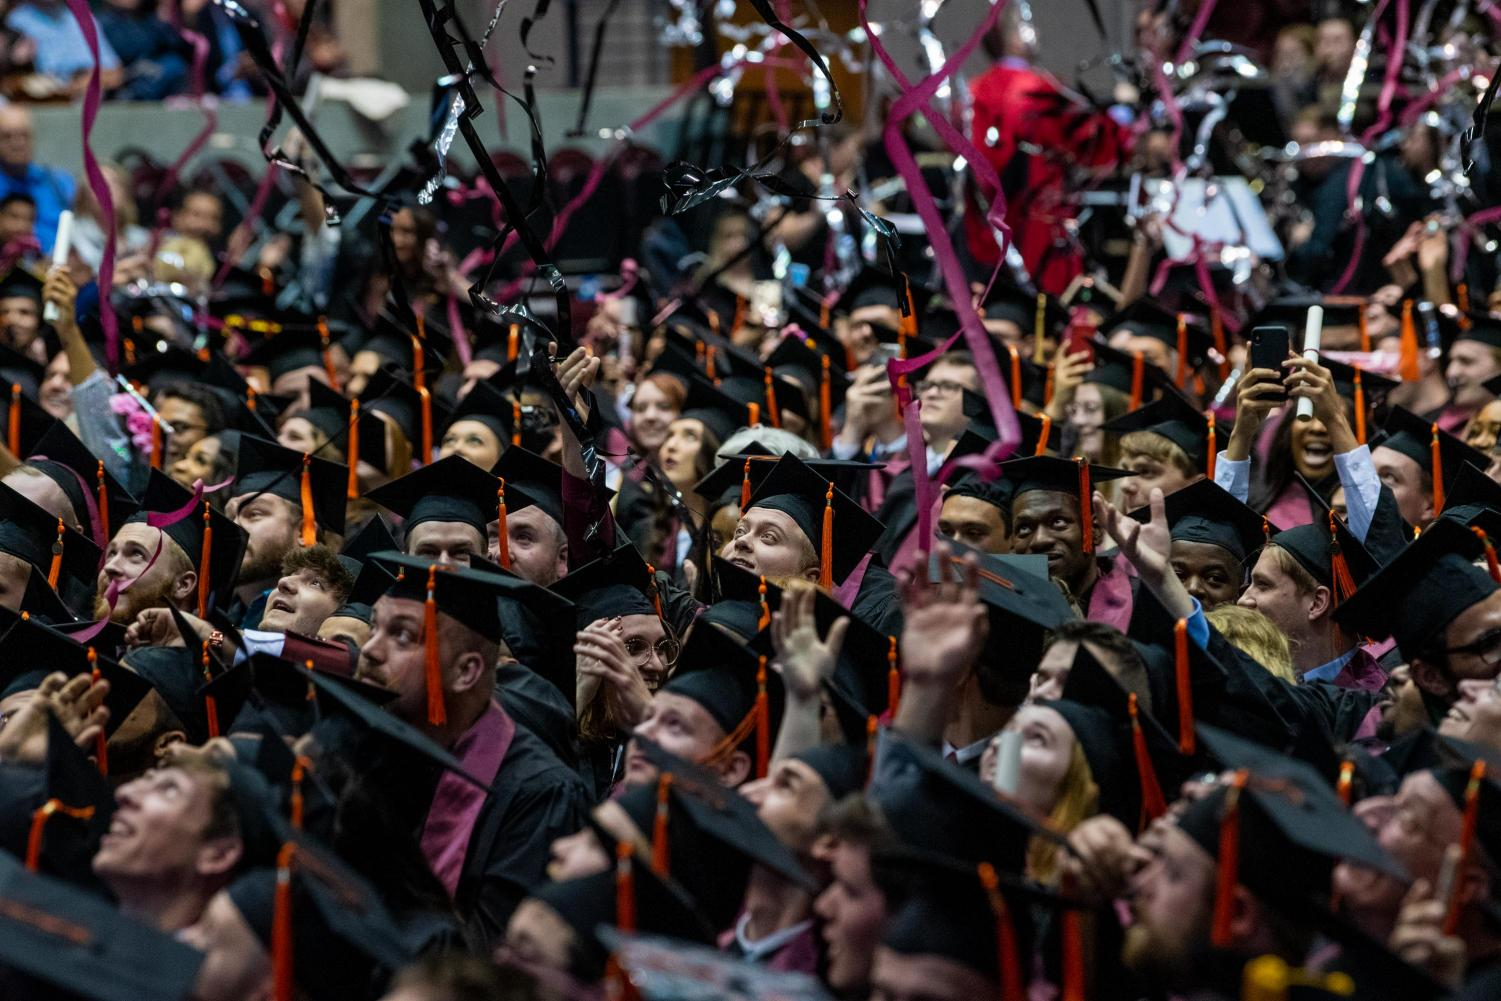 Graduated+students+react+as+confetti+falls+down+on+them+on+Saturday%2C+May+11%2C+2019+during+the+2019+commencement+inside+the+SIU+Arena.+